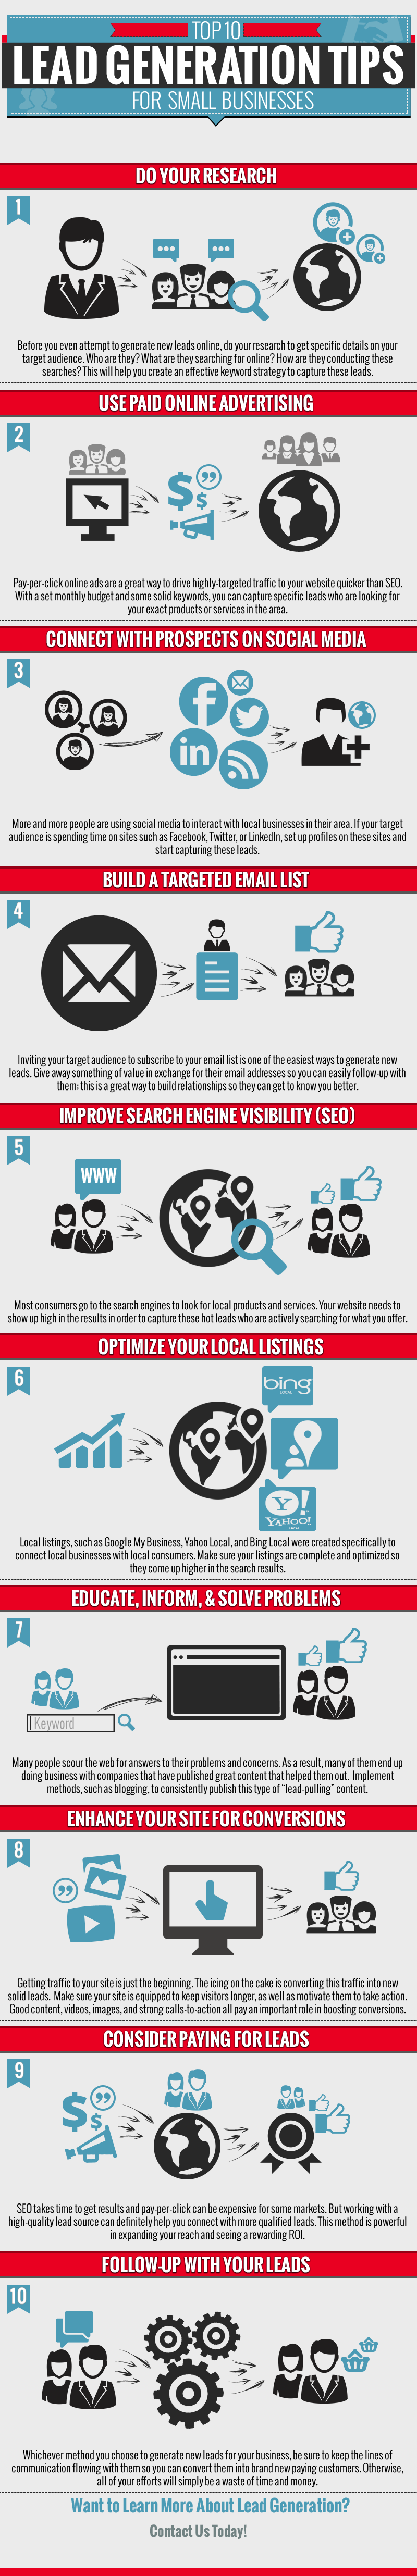 Lead Generation Tips for Small Businesses